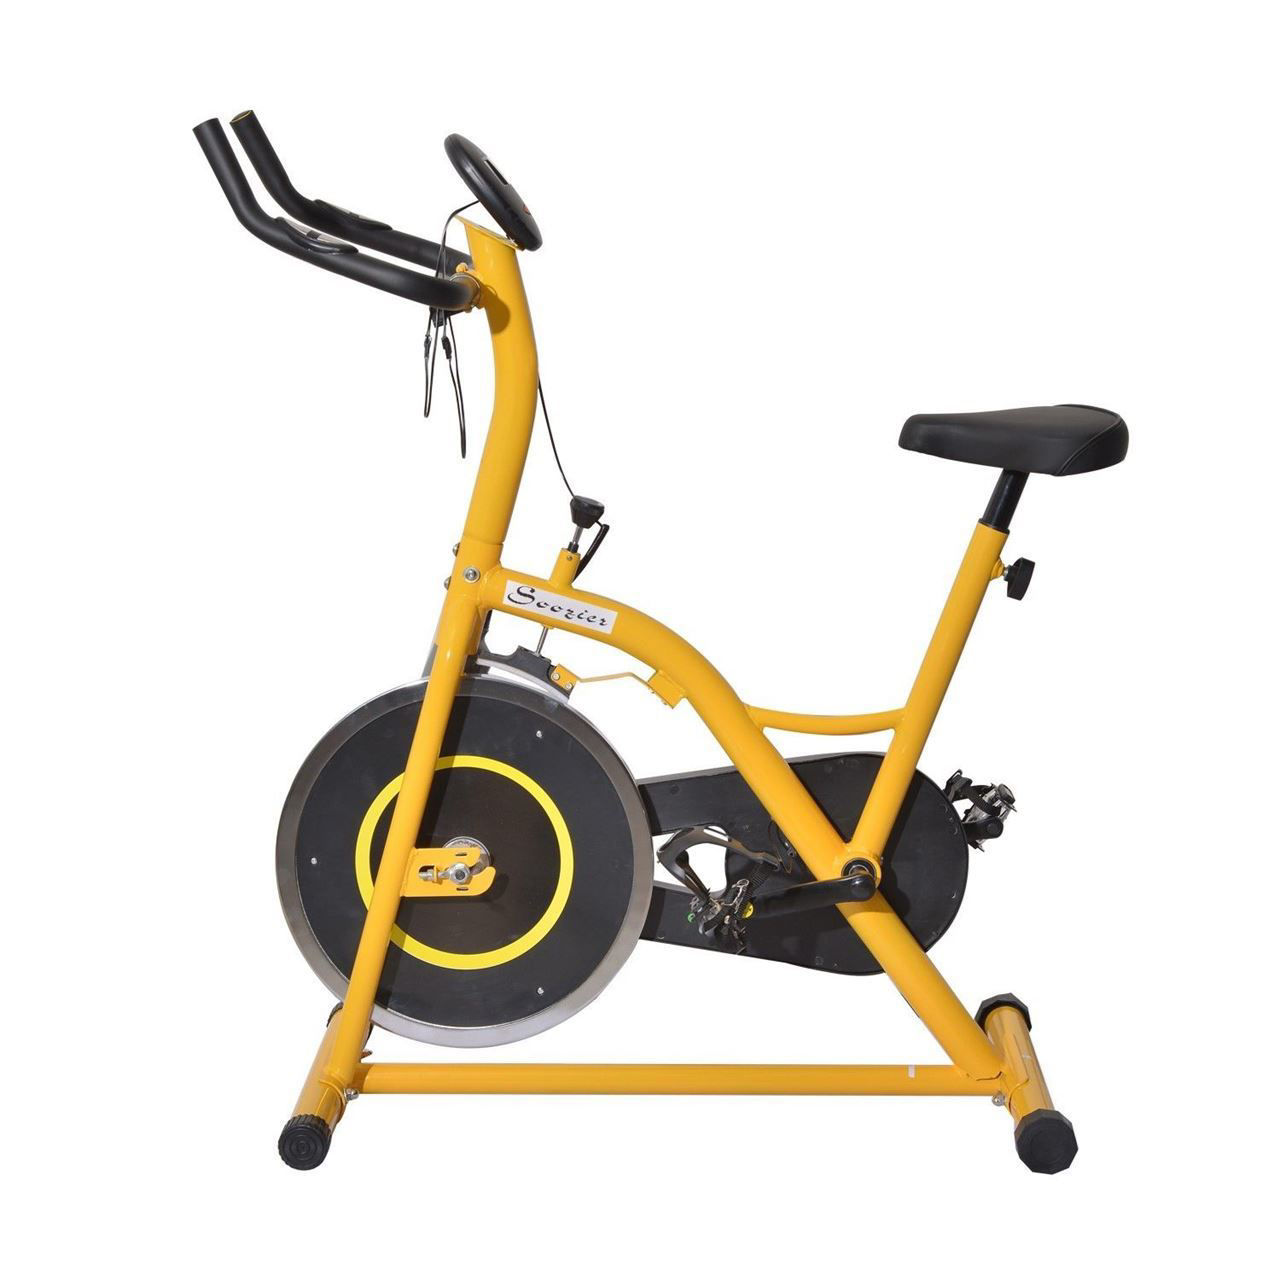 Picture of Home Gym Fitness Upright Stationary Exercise Cycling Bike with LCD Monitor - Yellow and Black